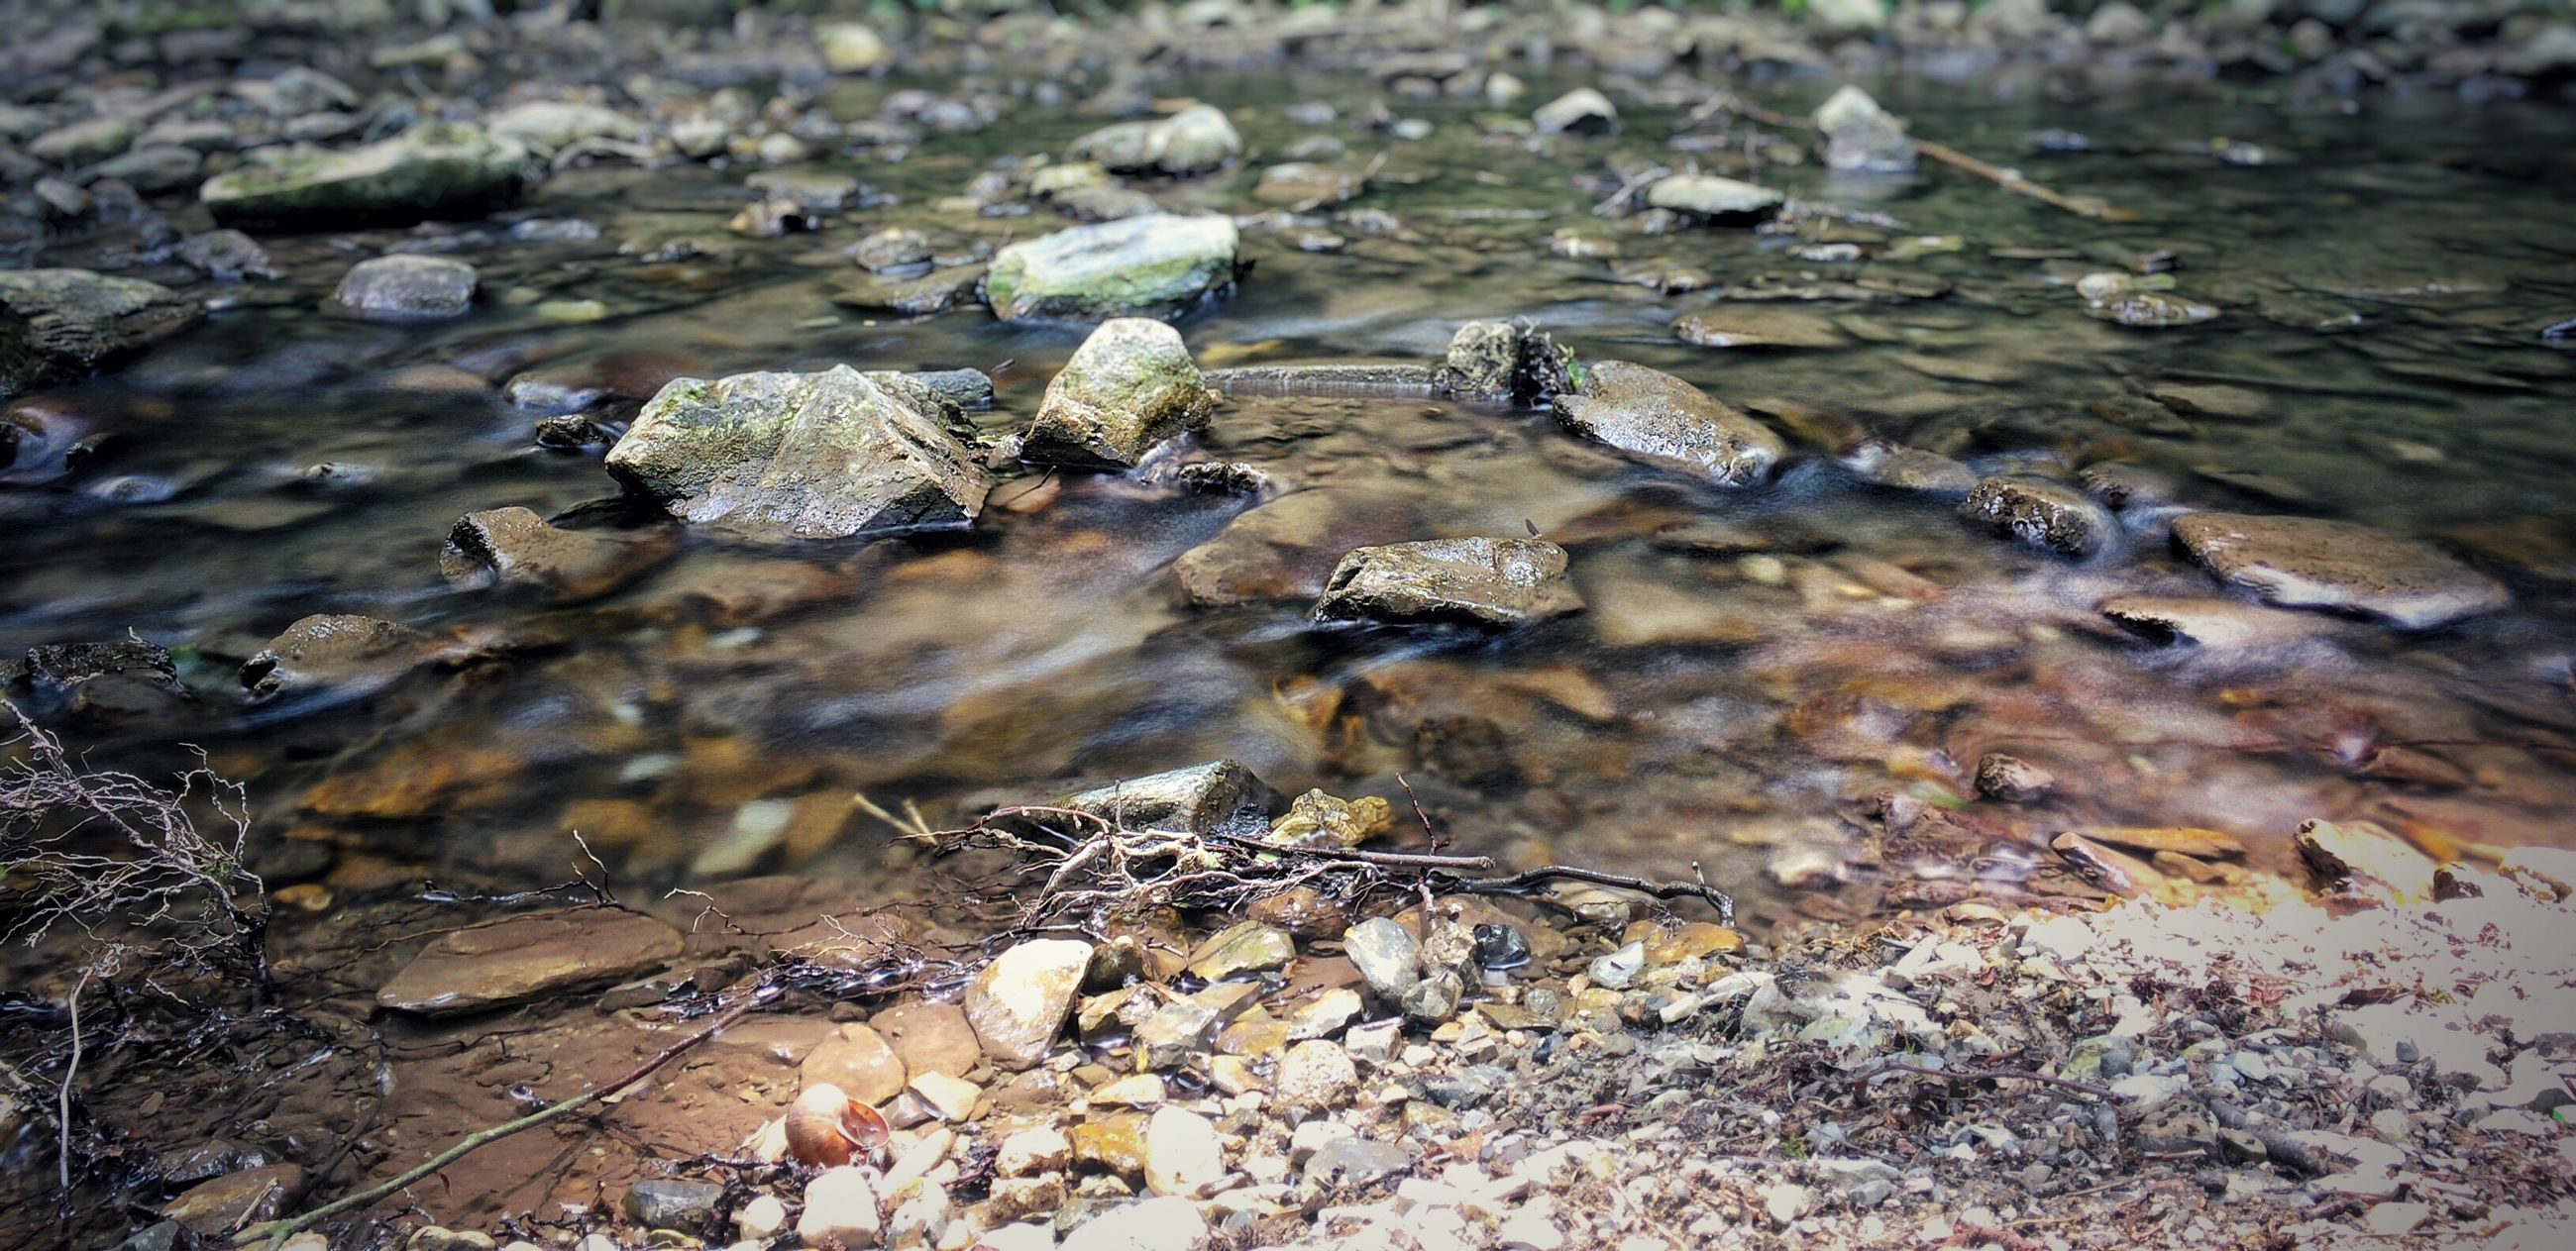 water, nature, high angle view, animal themes, tranquility, animals in the wild, dry, day, wildlife, lake, outdoors, leaf, close-up, no people, beauty in nature, reflection, rock - object, selective focus, ground, beach